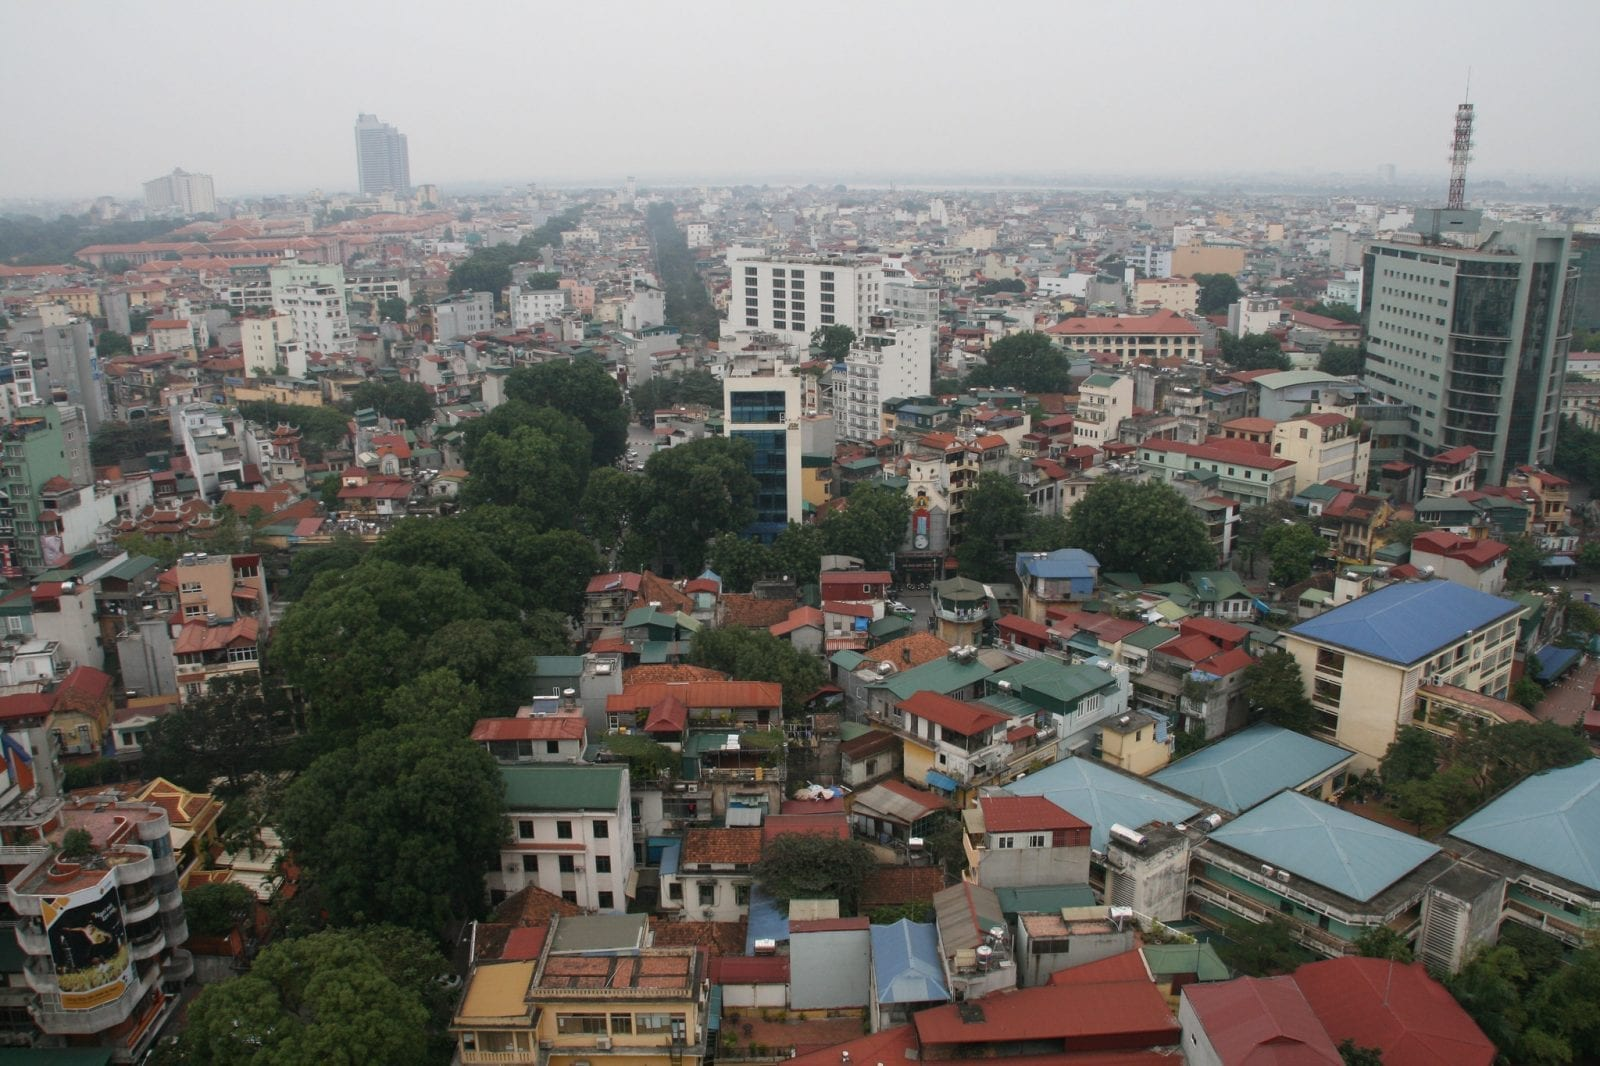 Image of the skyline in Hanoi, Vietnam during the day